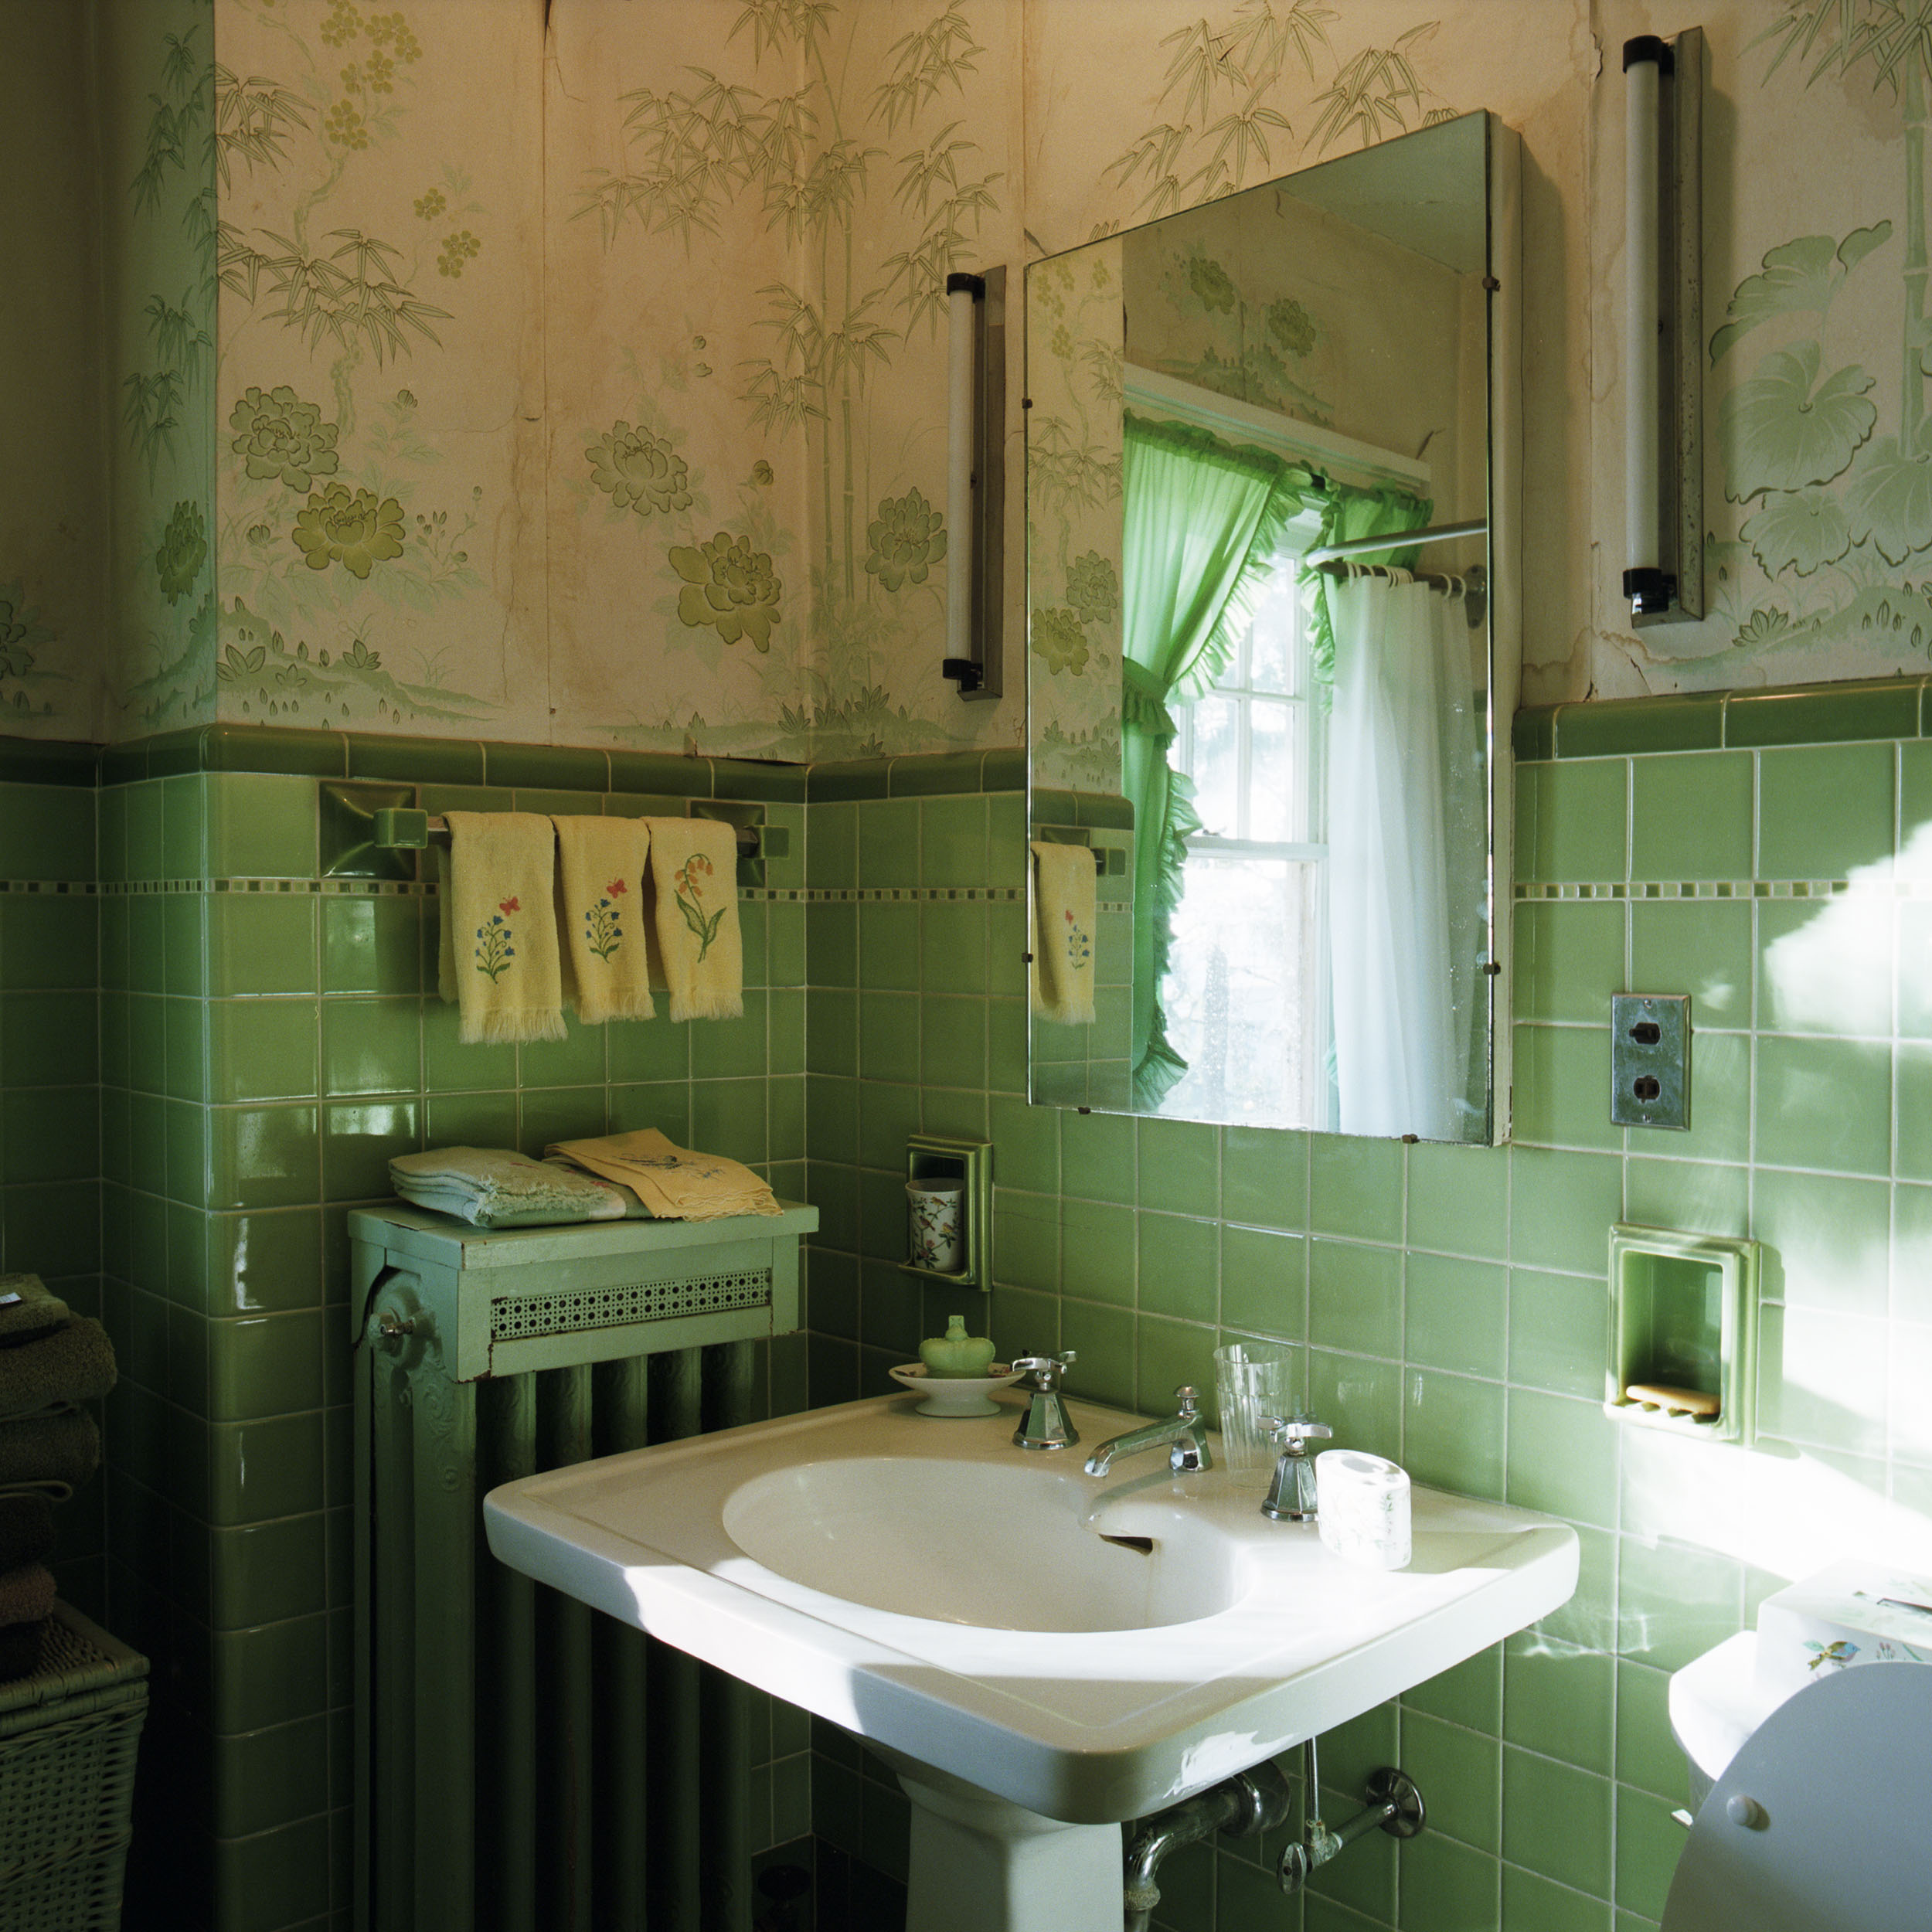 1085-01B RH Bathroom.jpg